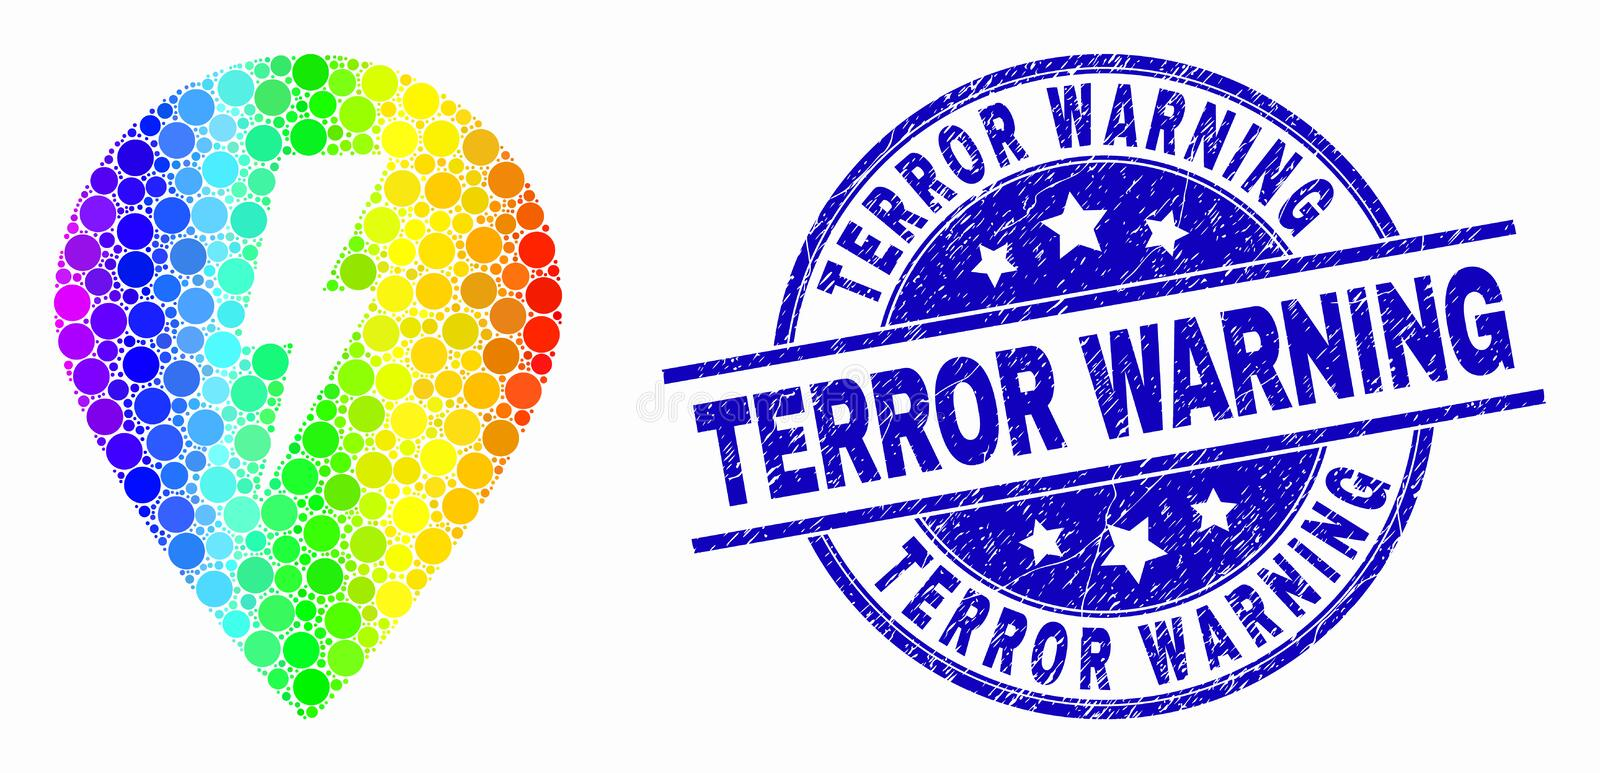 Vector Spectral Pixelated Electric Map Marker Icon and Scratched Terror Warning Watermark. Dot spectrum electric map marker mosaic pictogram and Terror Warning royalty free illustration